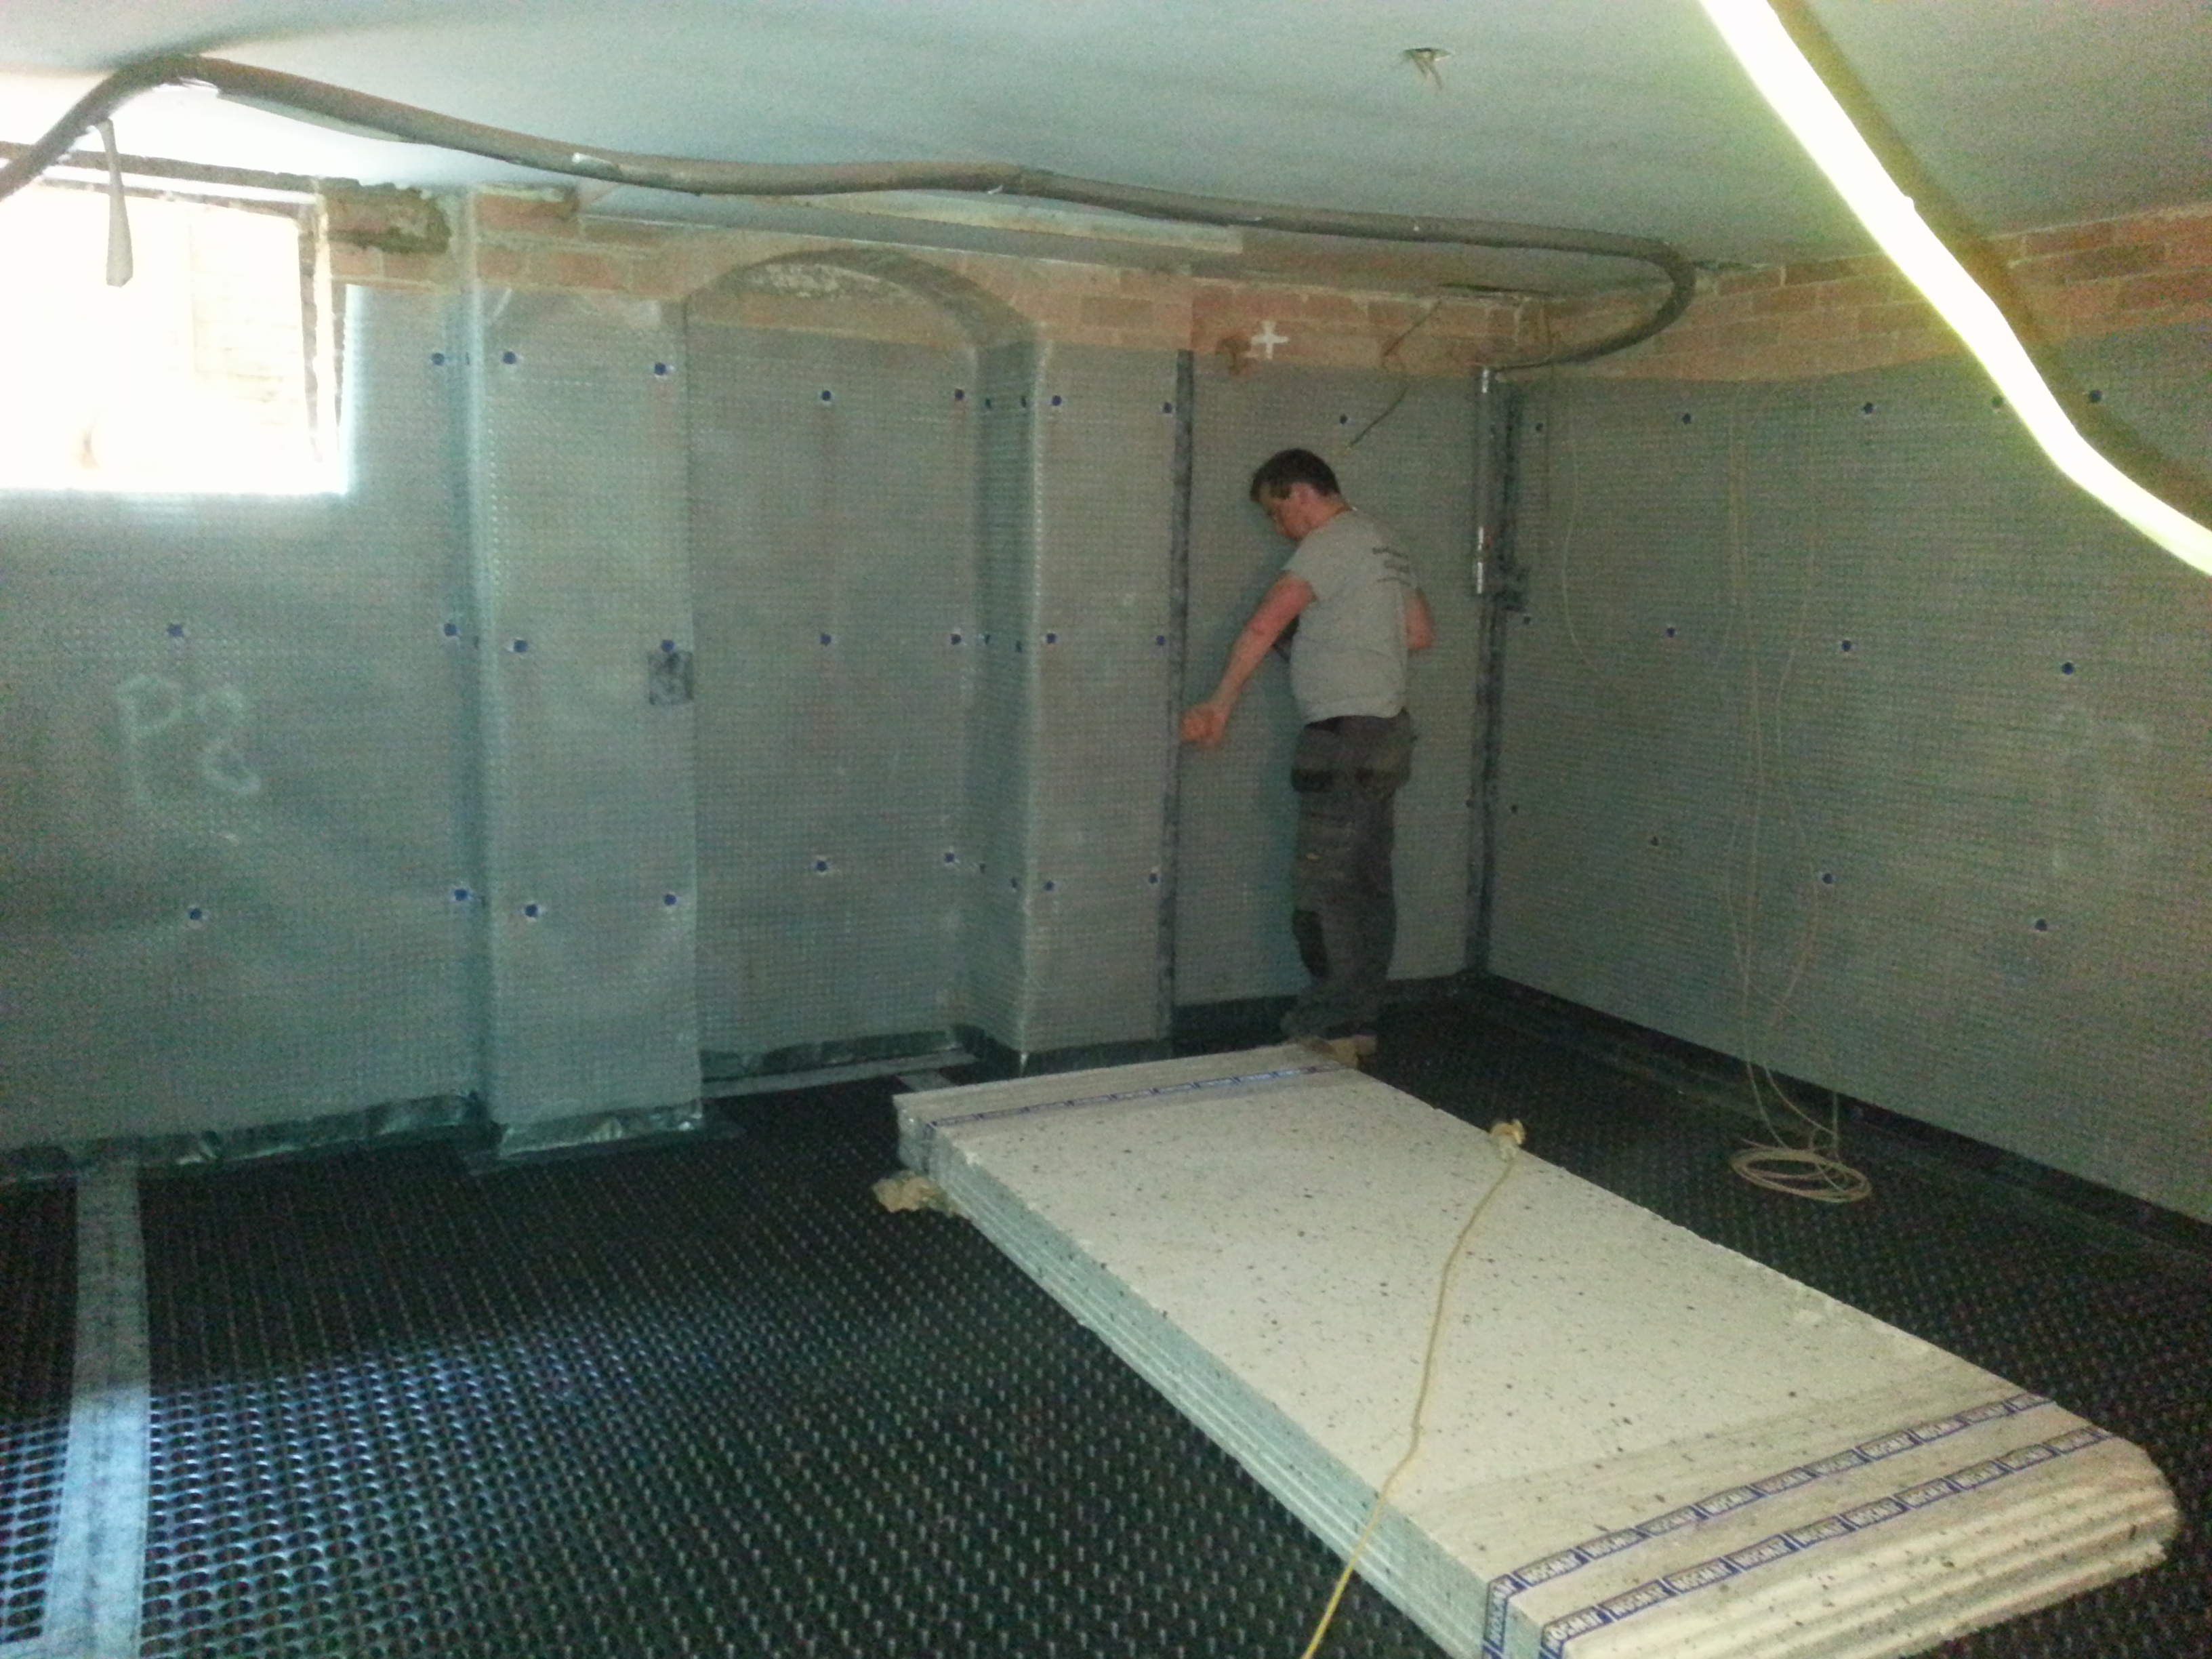 All membrane joints being taped, sealed and inspected